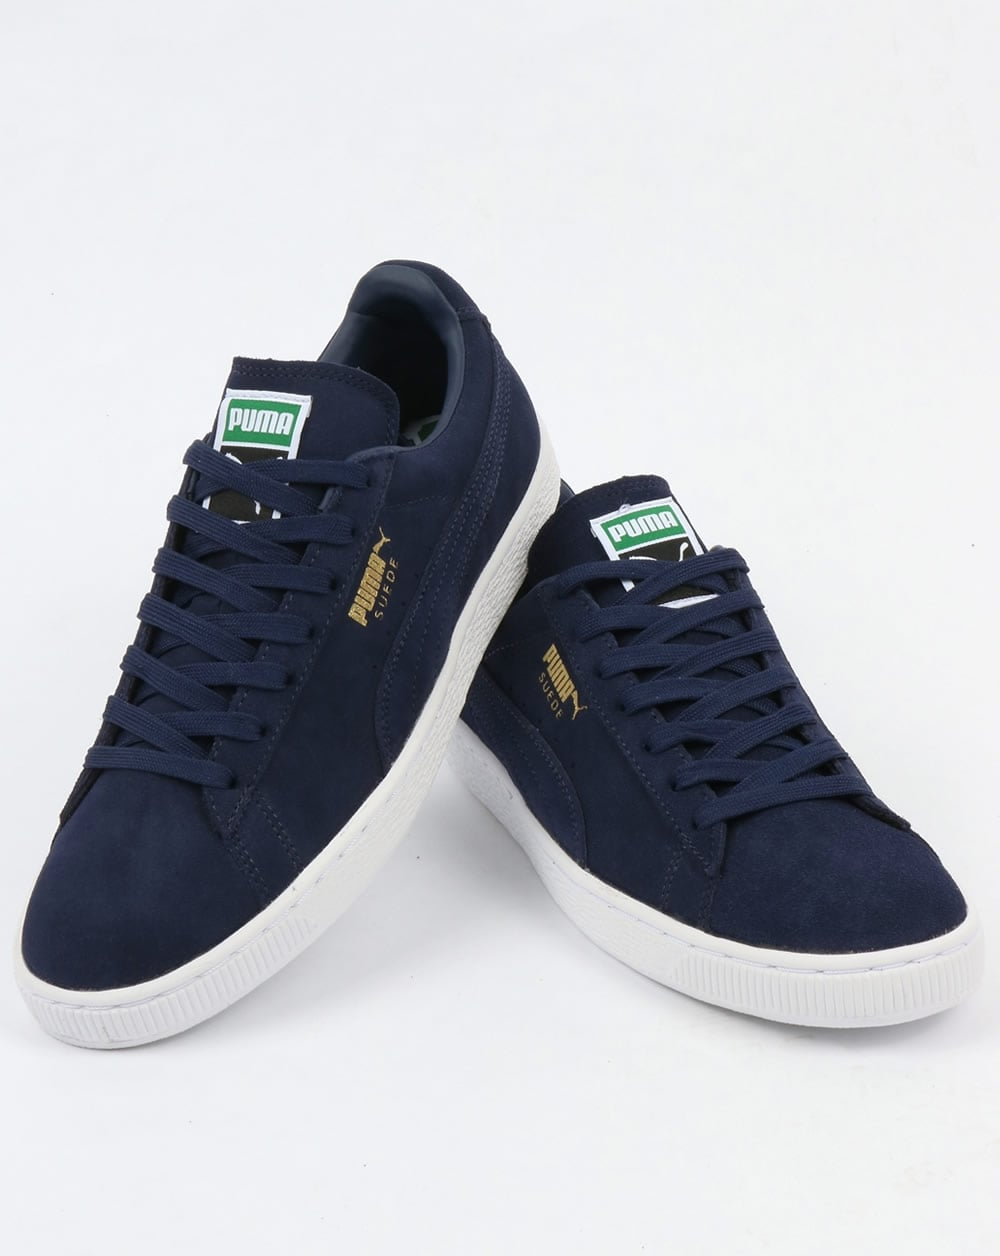 promo code 5a56b 71efa Puma Suede Classic Trainers all Navy